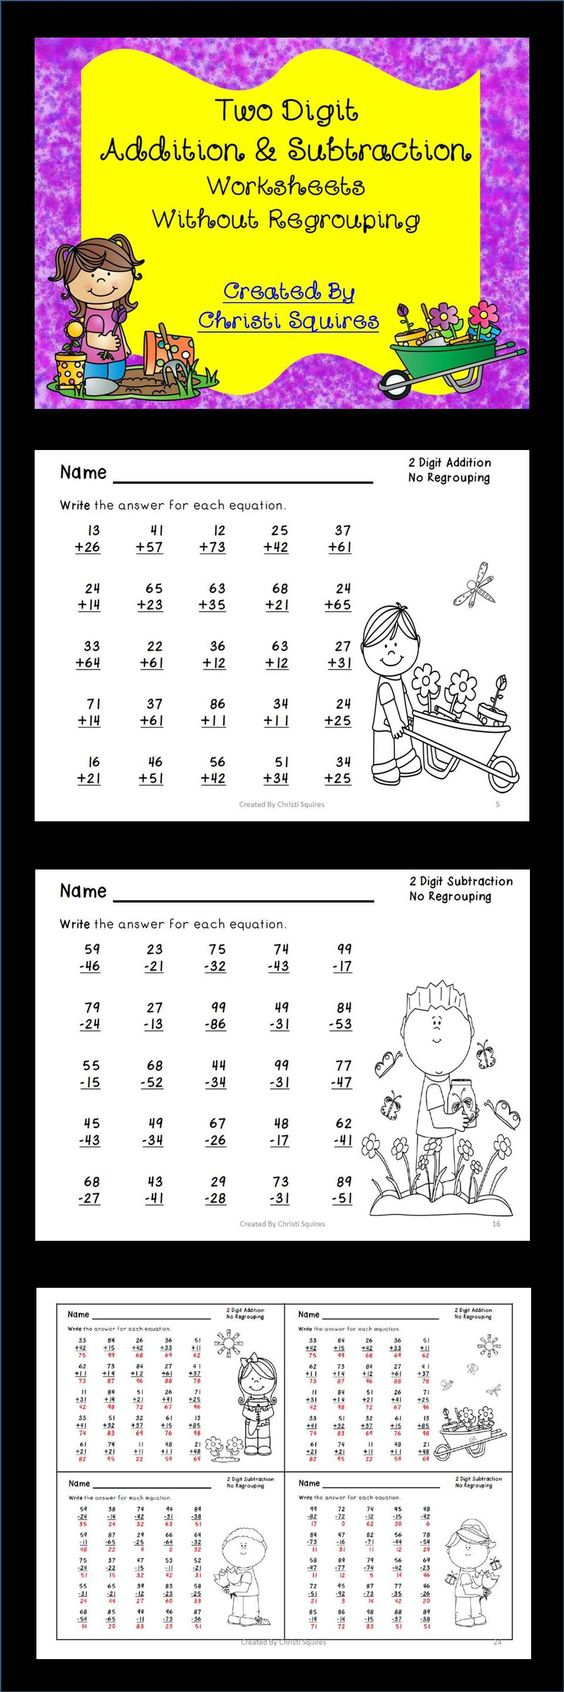 math worksheet : two digit addition  subtraction worksheets without regrouping  : Adding And Subtracting Two Digit Numbers With Regrouping Worksheets